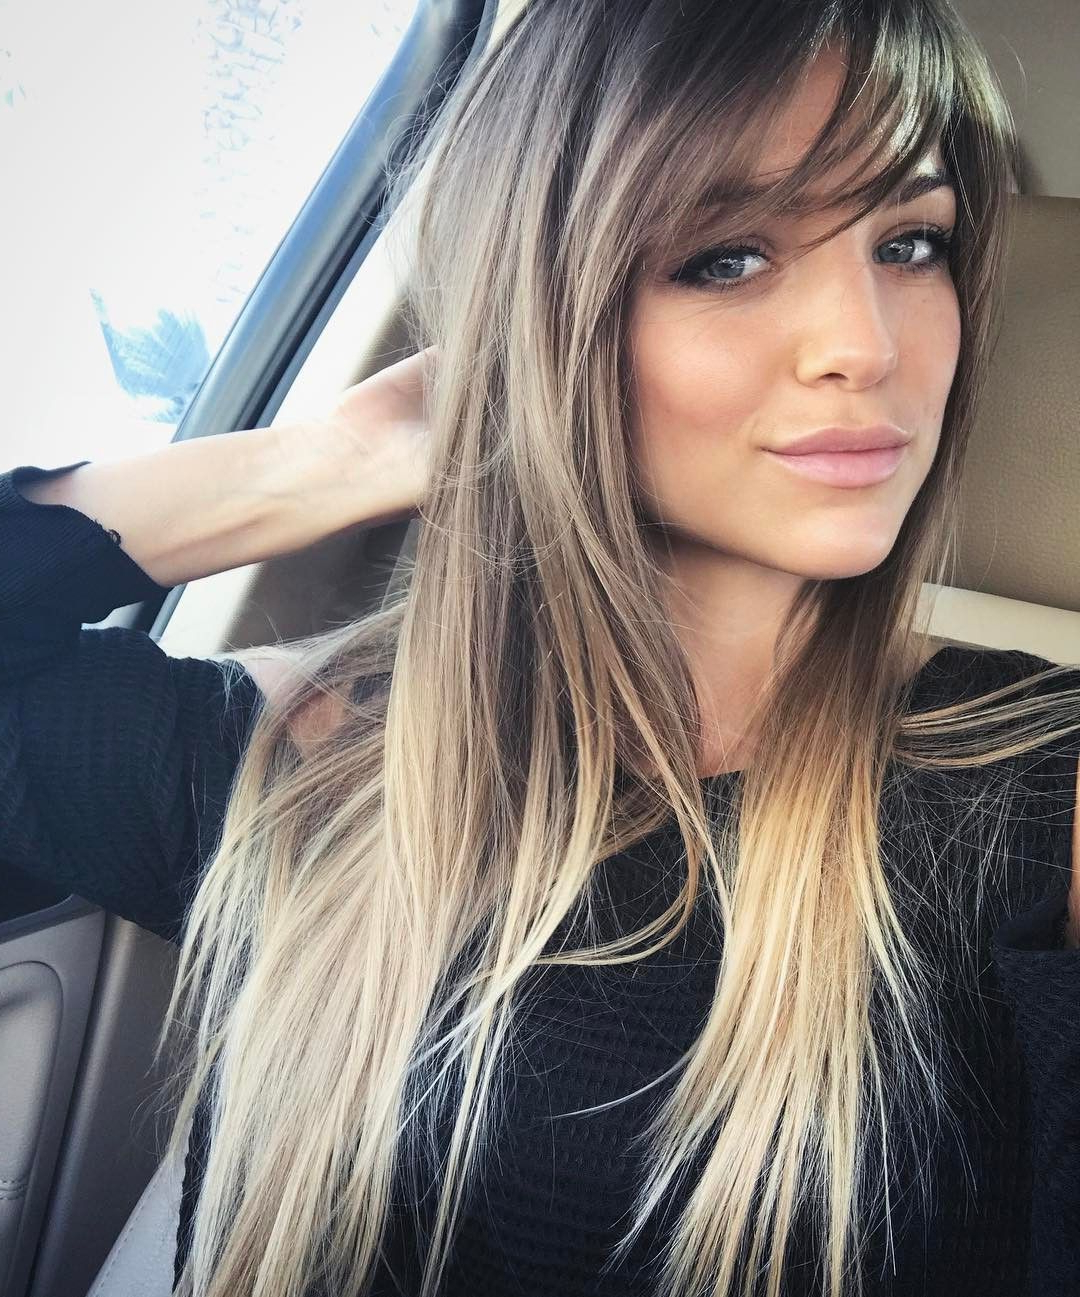 25 Really Unique Ways To Wear Side Bangs — Your Best Choice Within Most Up To Date Feathered Bangs Hairstyles With Bright Highlights (View 2 of 20)